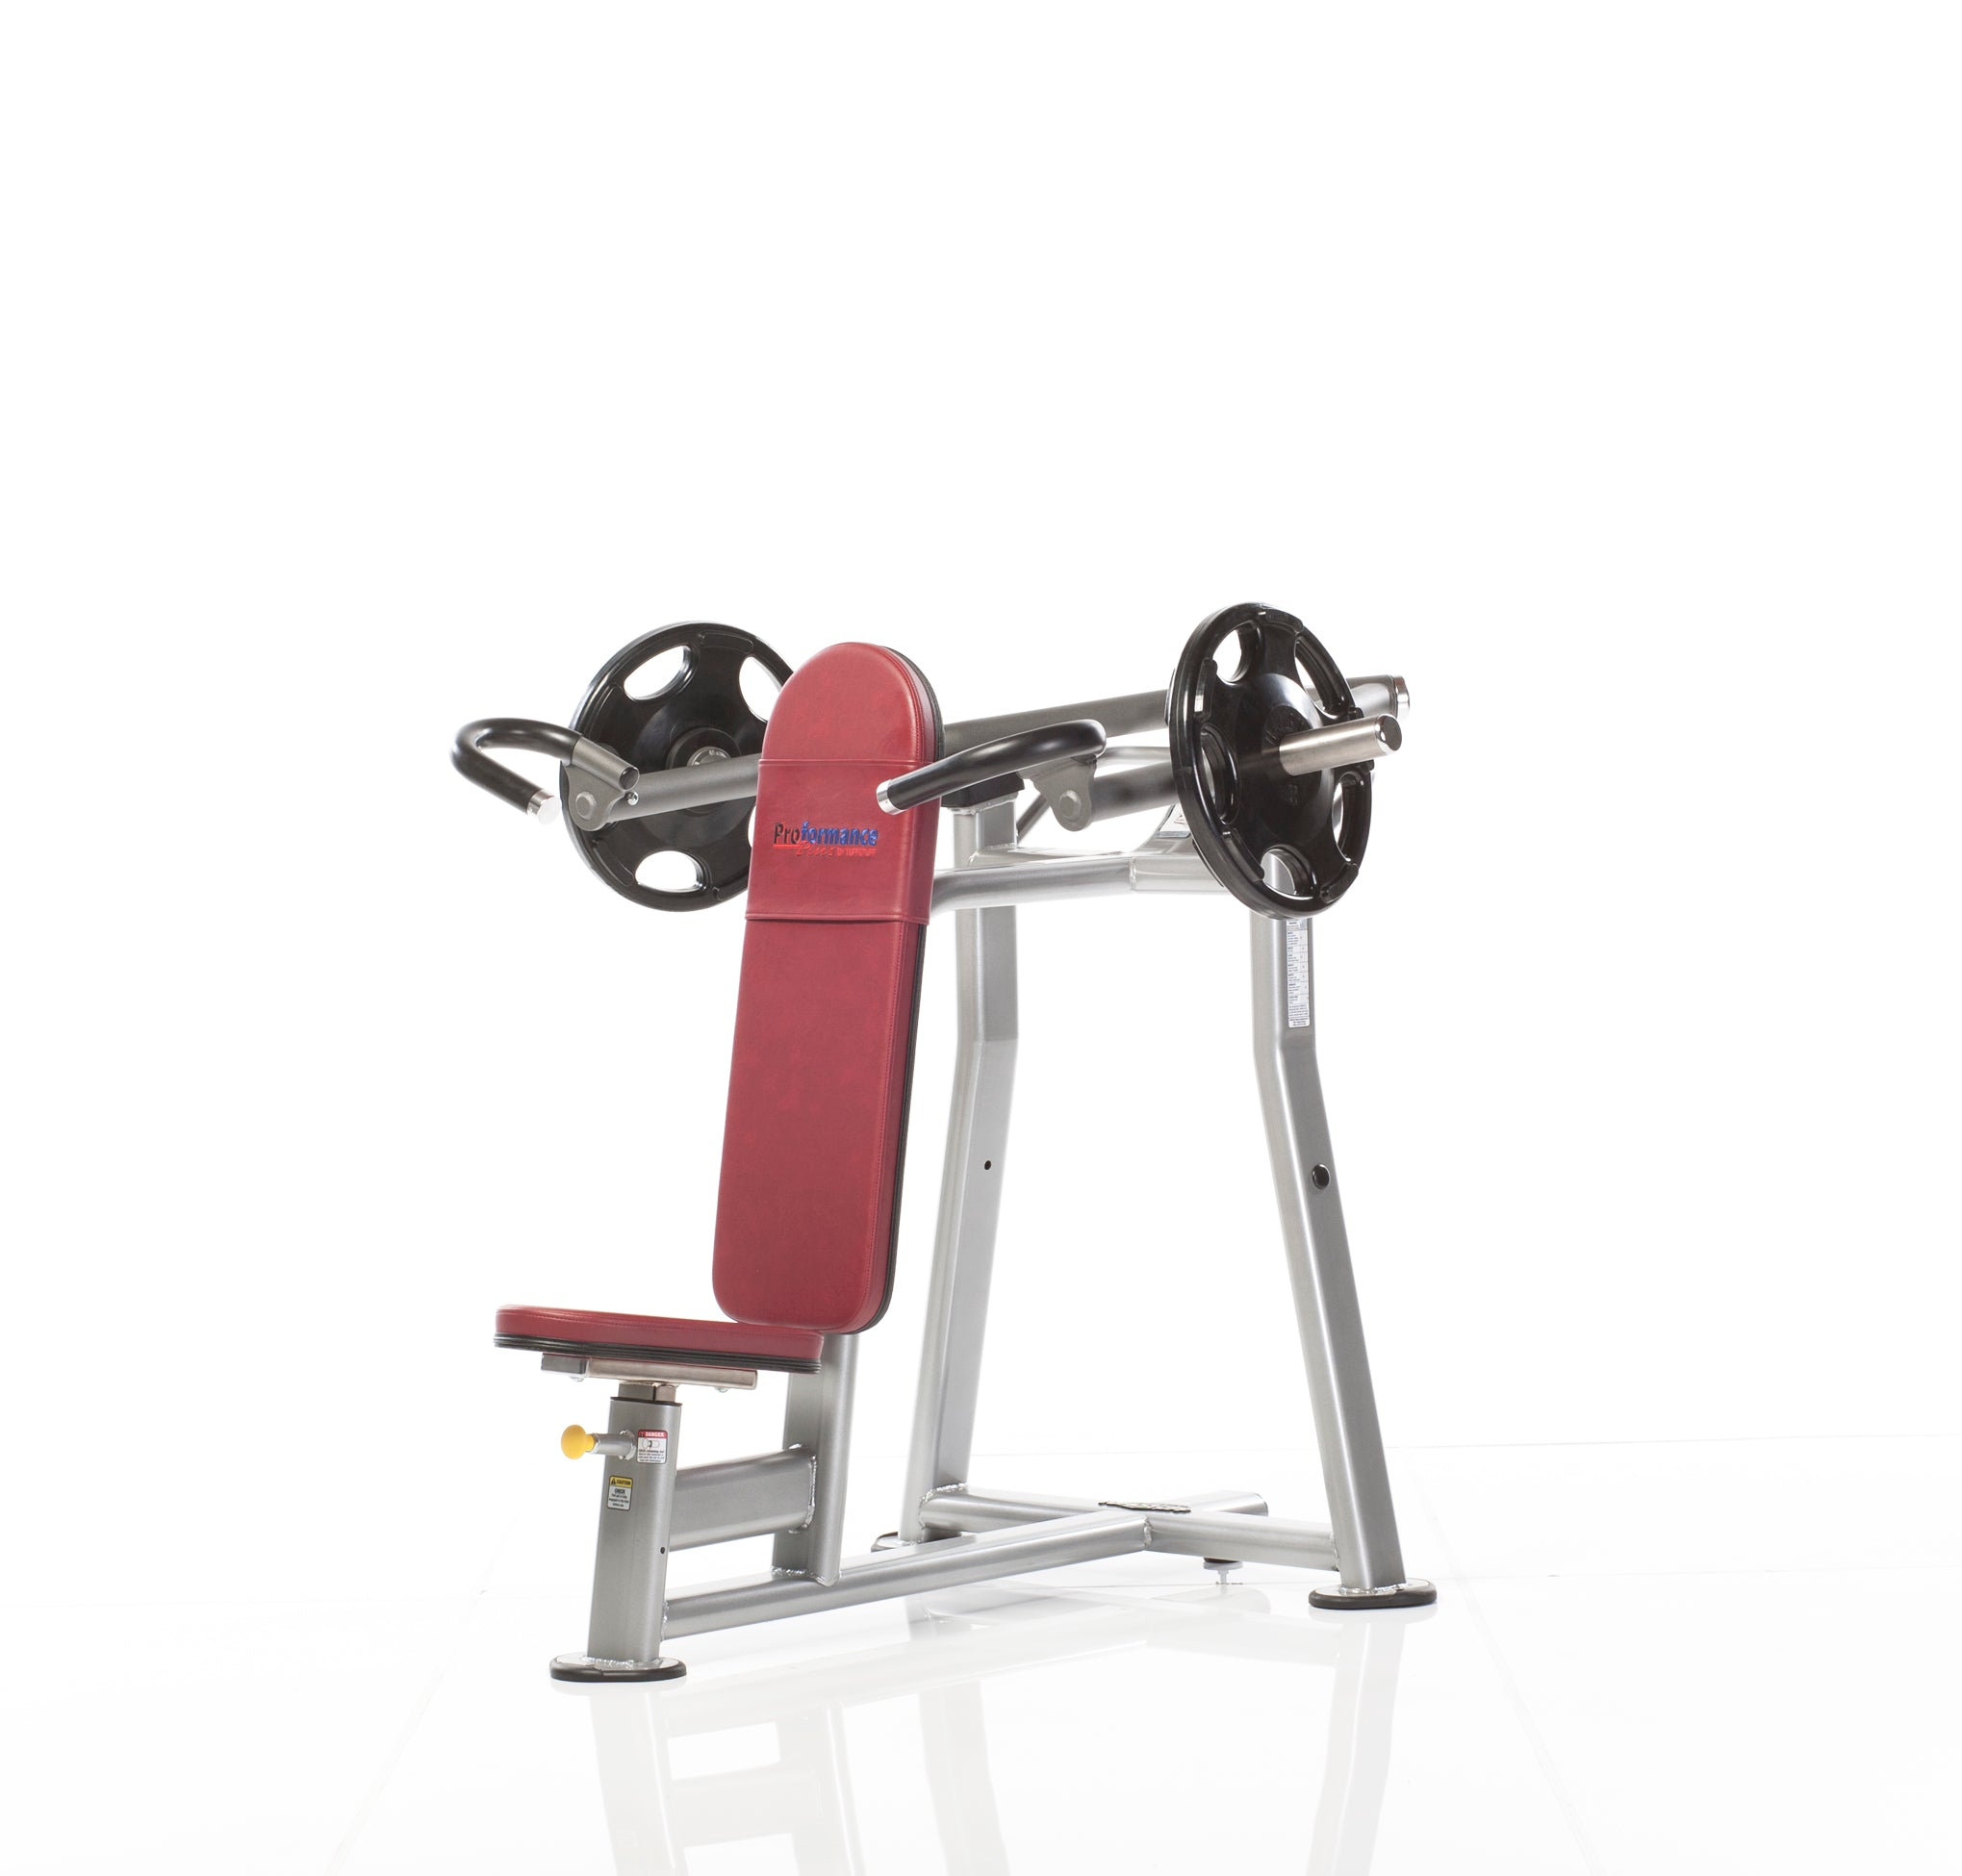 Tuff Stuff Proformance Plus Plate-Loaded Shoulder Press